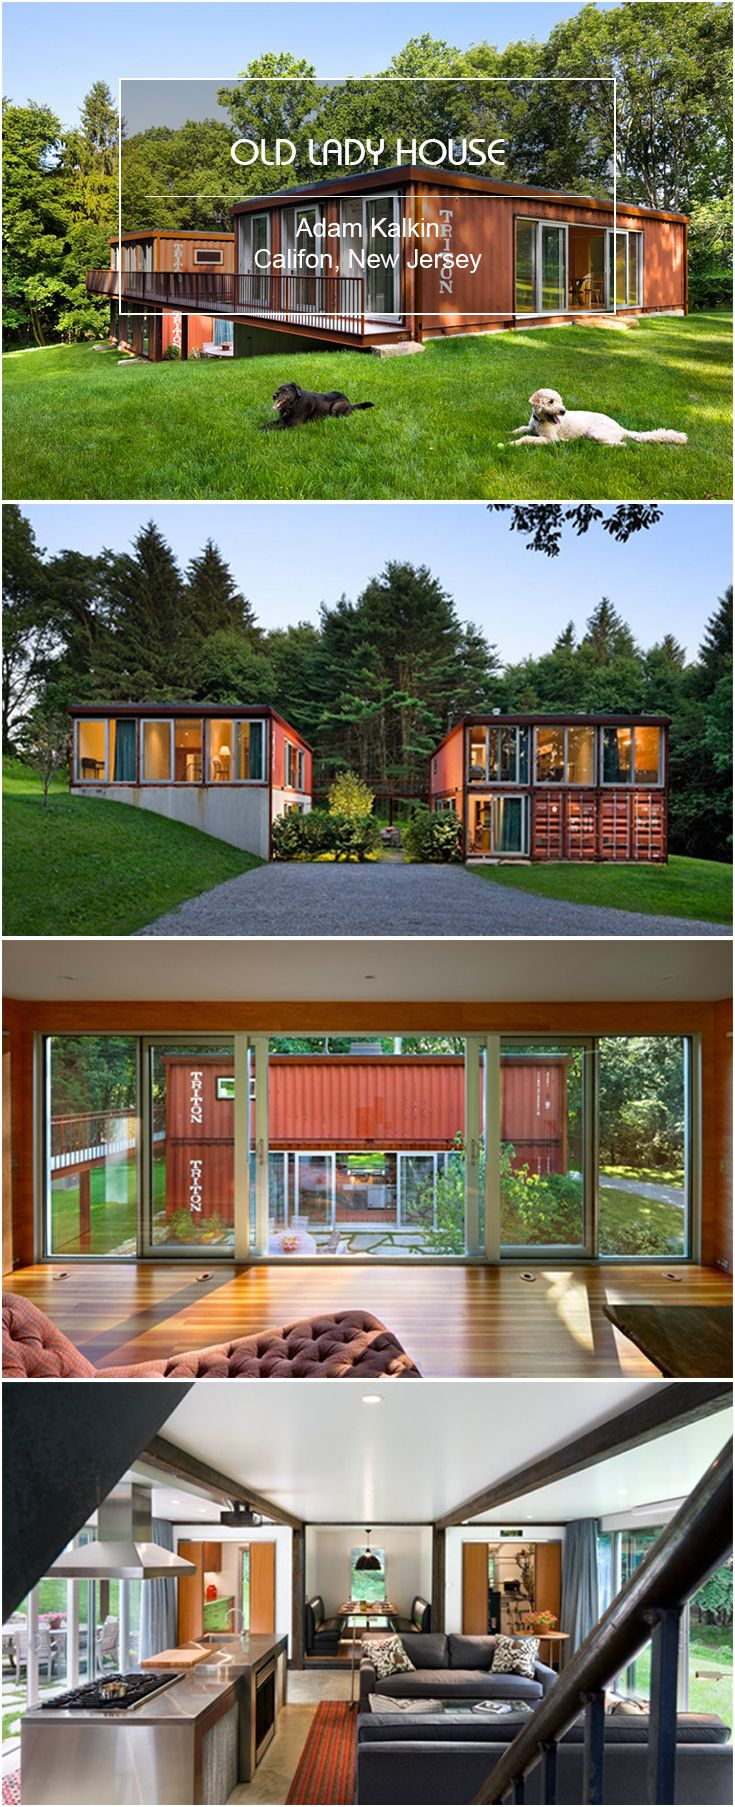 Best Kitchen Gallery: Container Old Lady House Adam Kalkin Califon New Jersey of Kalkin Shipping Container Homes  on rachelxblog.com